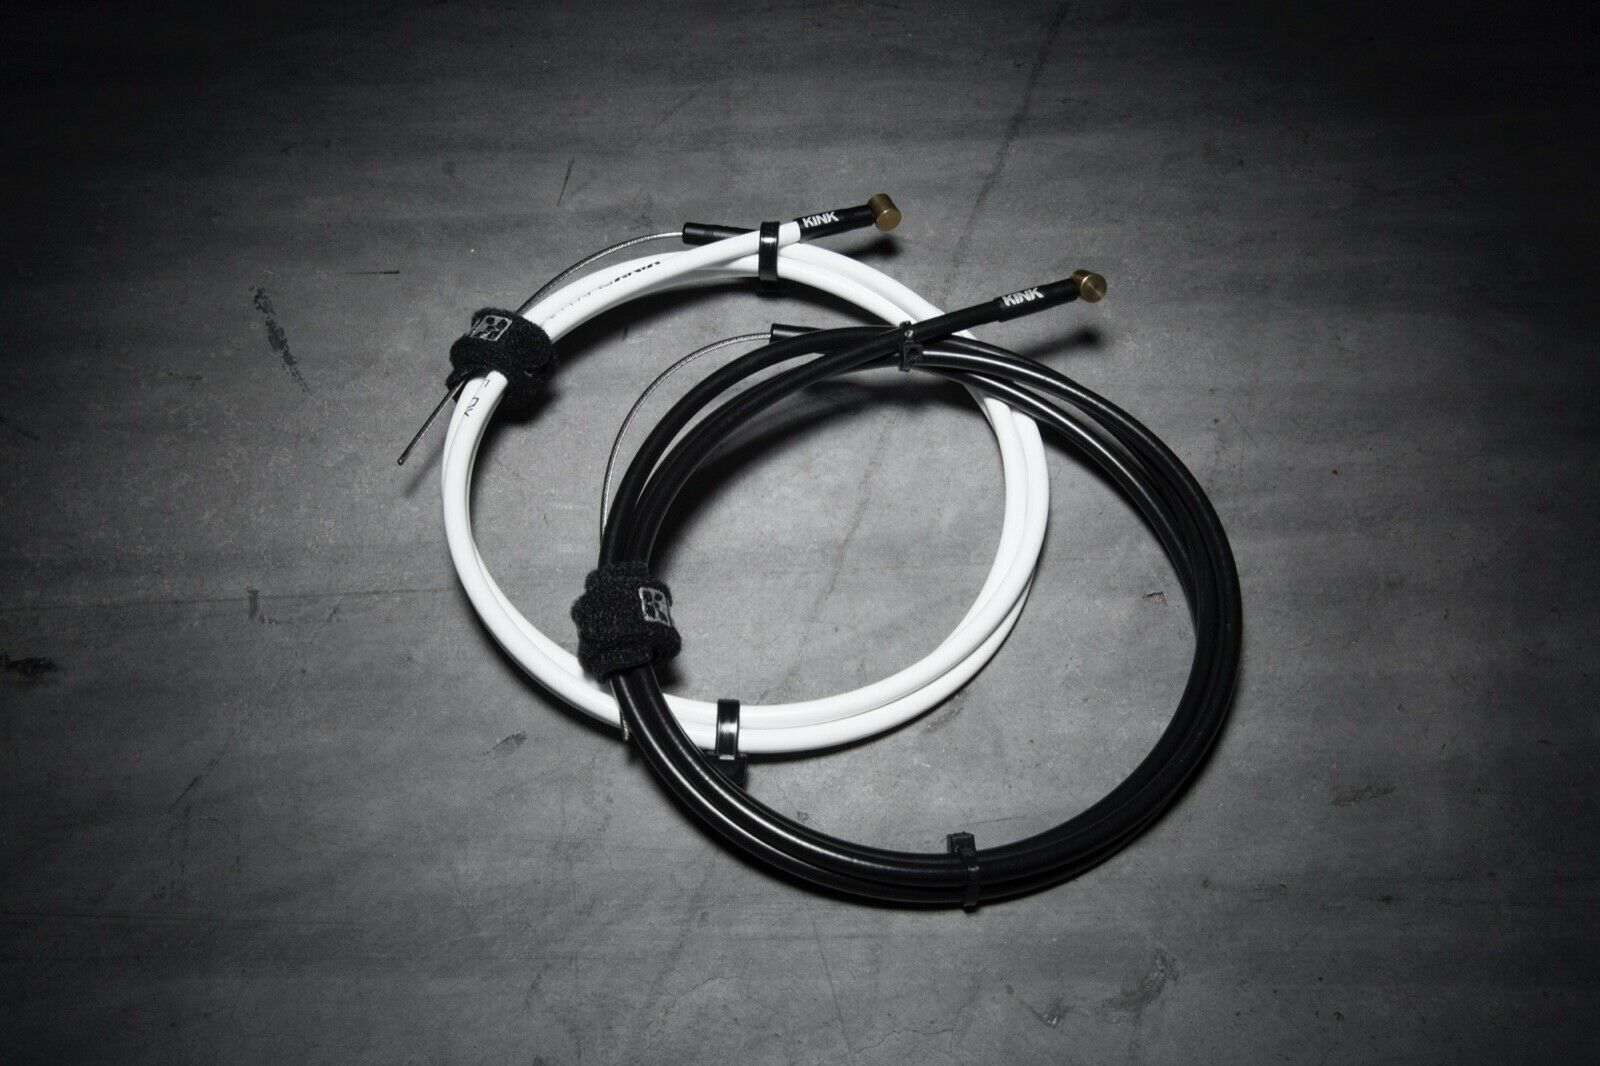 Kink Linear DX Replacement no Bind 50 in Brake Cable for BMX Bicycles White